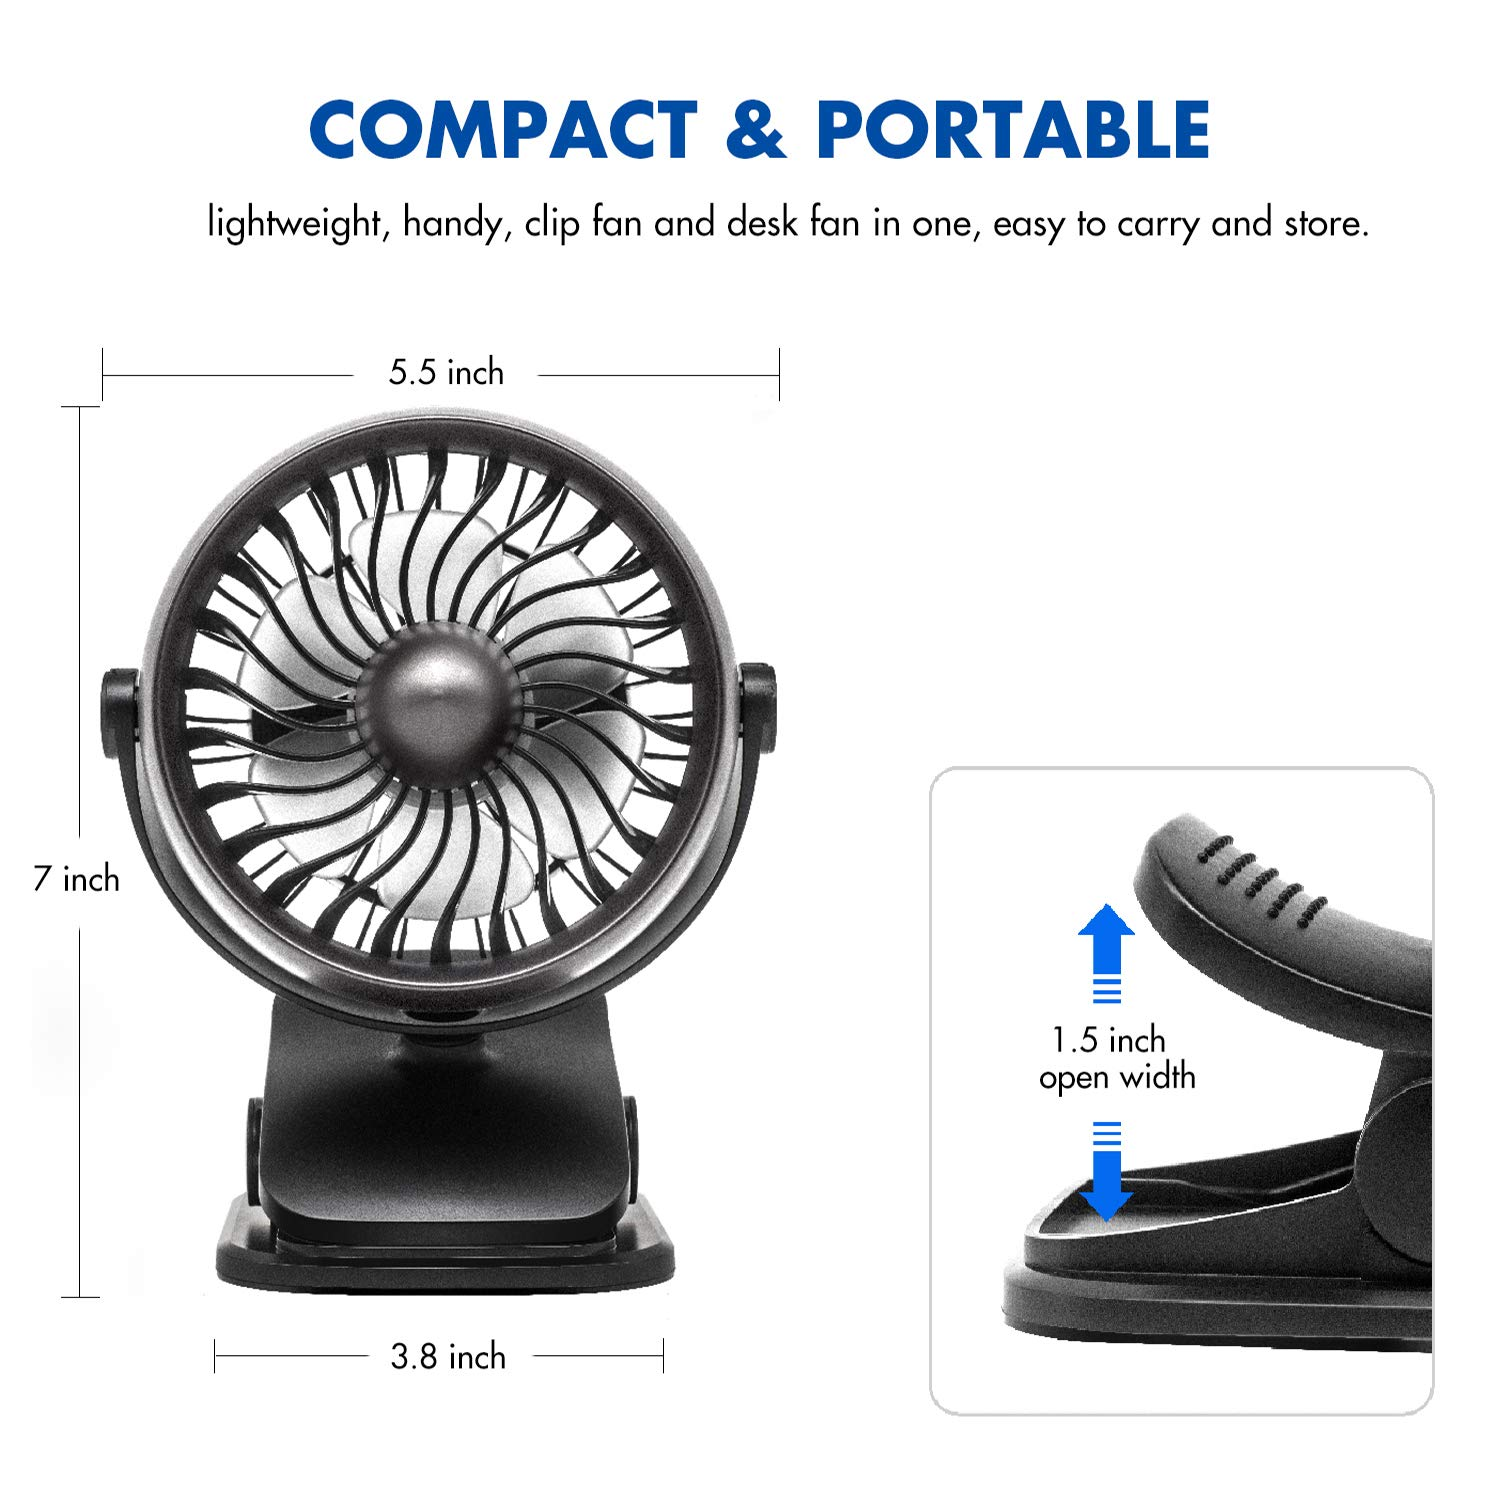 Whisper Quiet 360/° Rotation Adjustable Speed Personal Fan for Office Outdoor Portable Cooling USB Rechargeable 2200mAh High Capacity Stroller Fan Battery Operated Clip on Mini Desk Fan